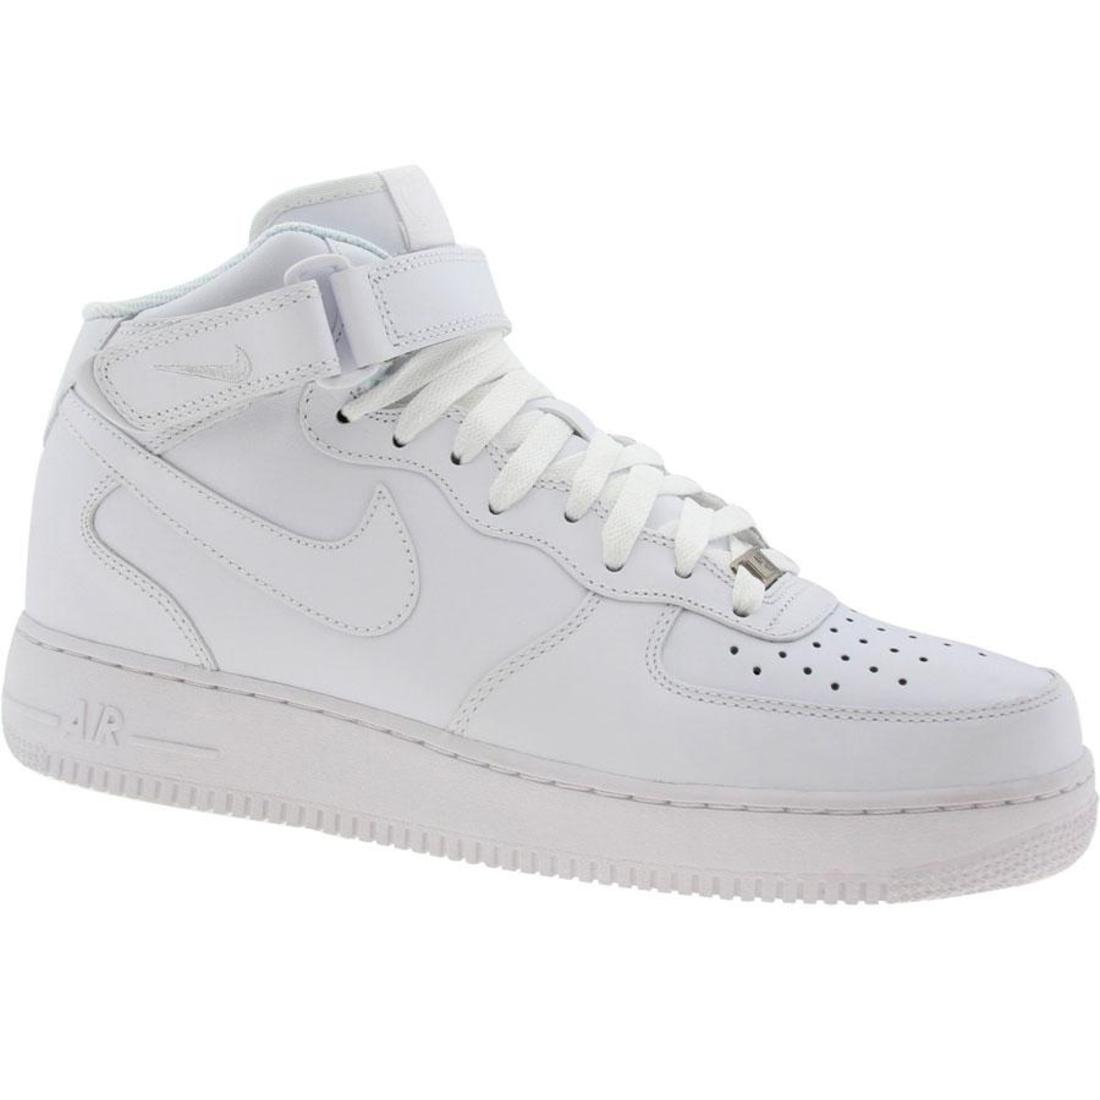 nike air force one mid white cheap,up to 41% Discounts